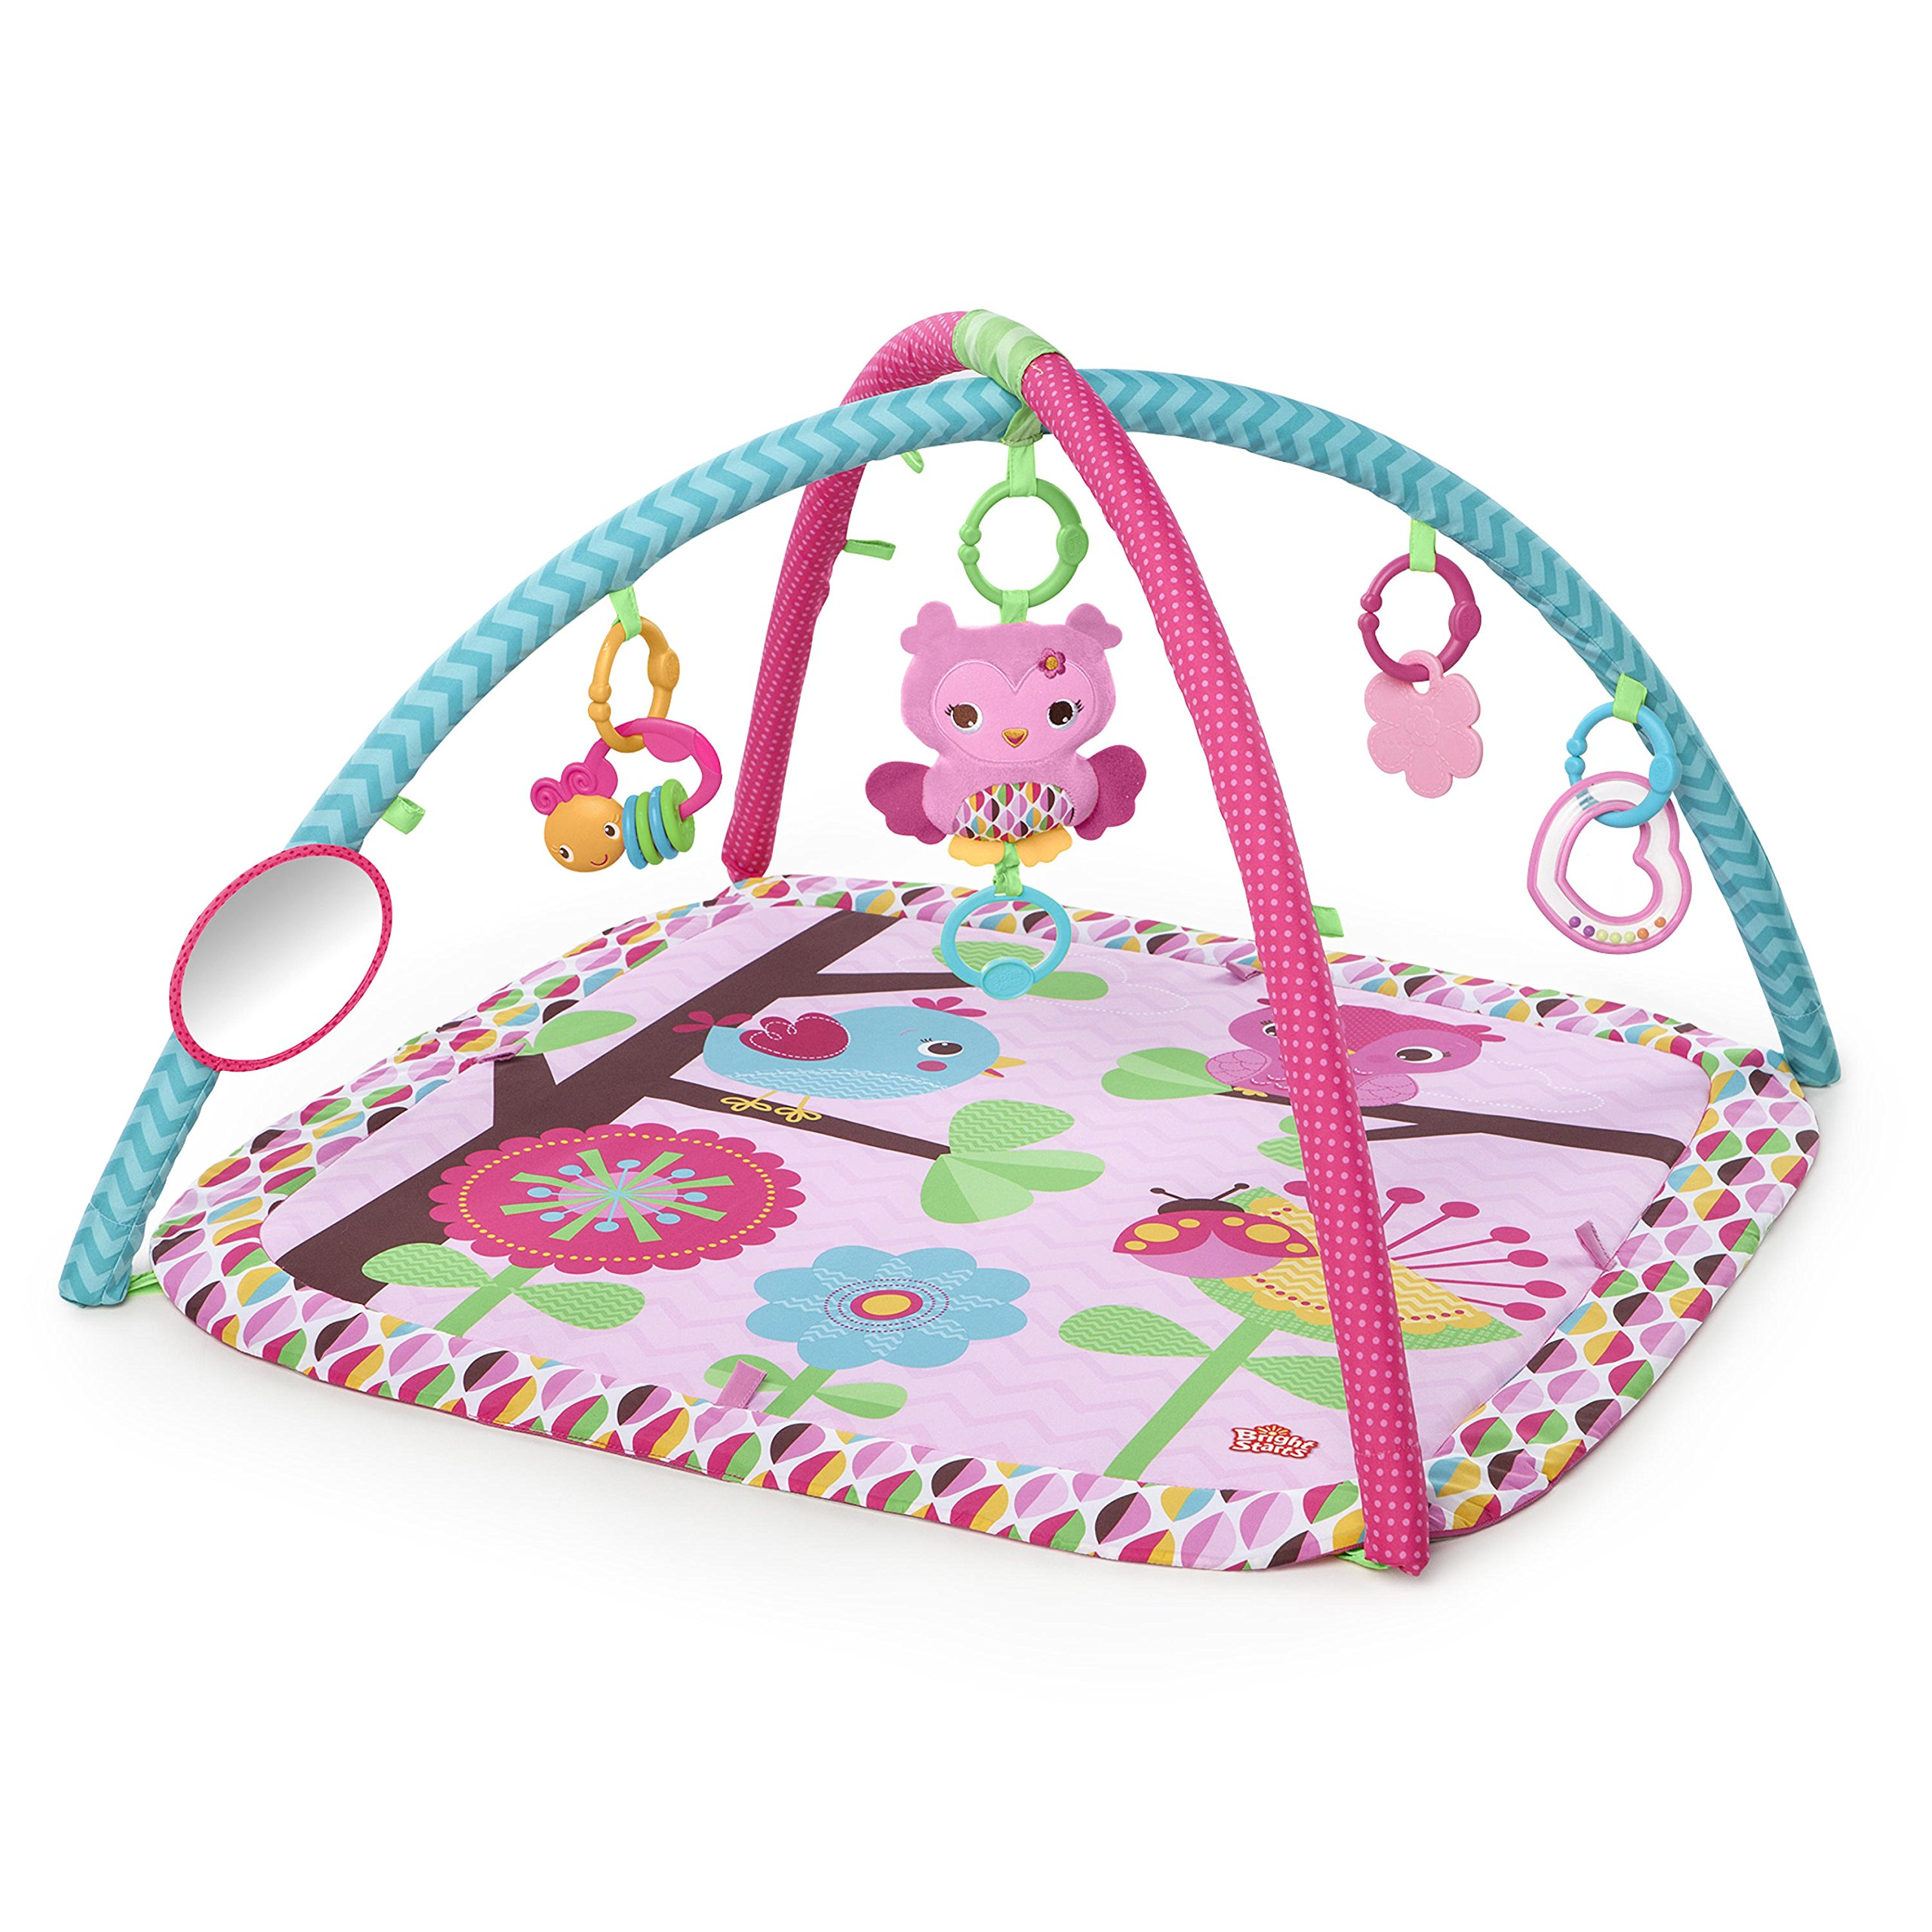 Bright Starts Charming Chirps Activity Gym, Pretty In Pink by Bright Starts (Image #1)